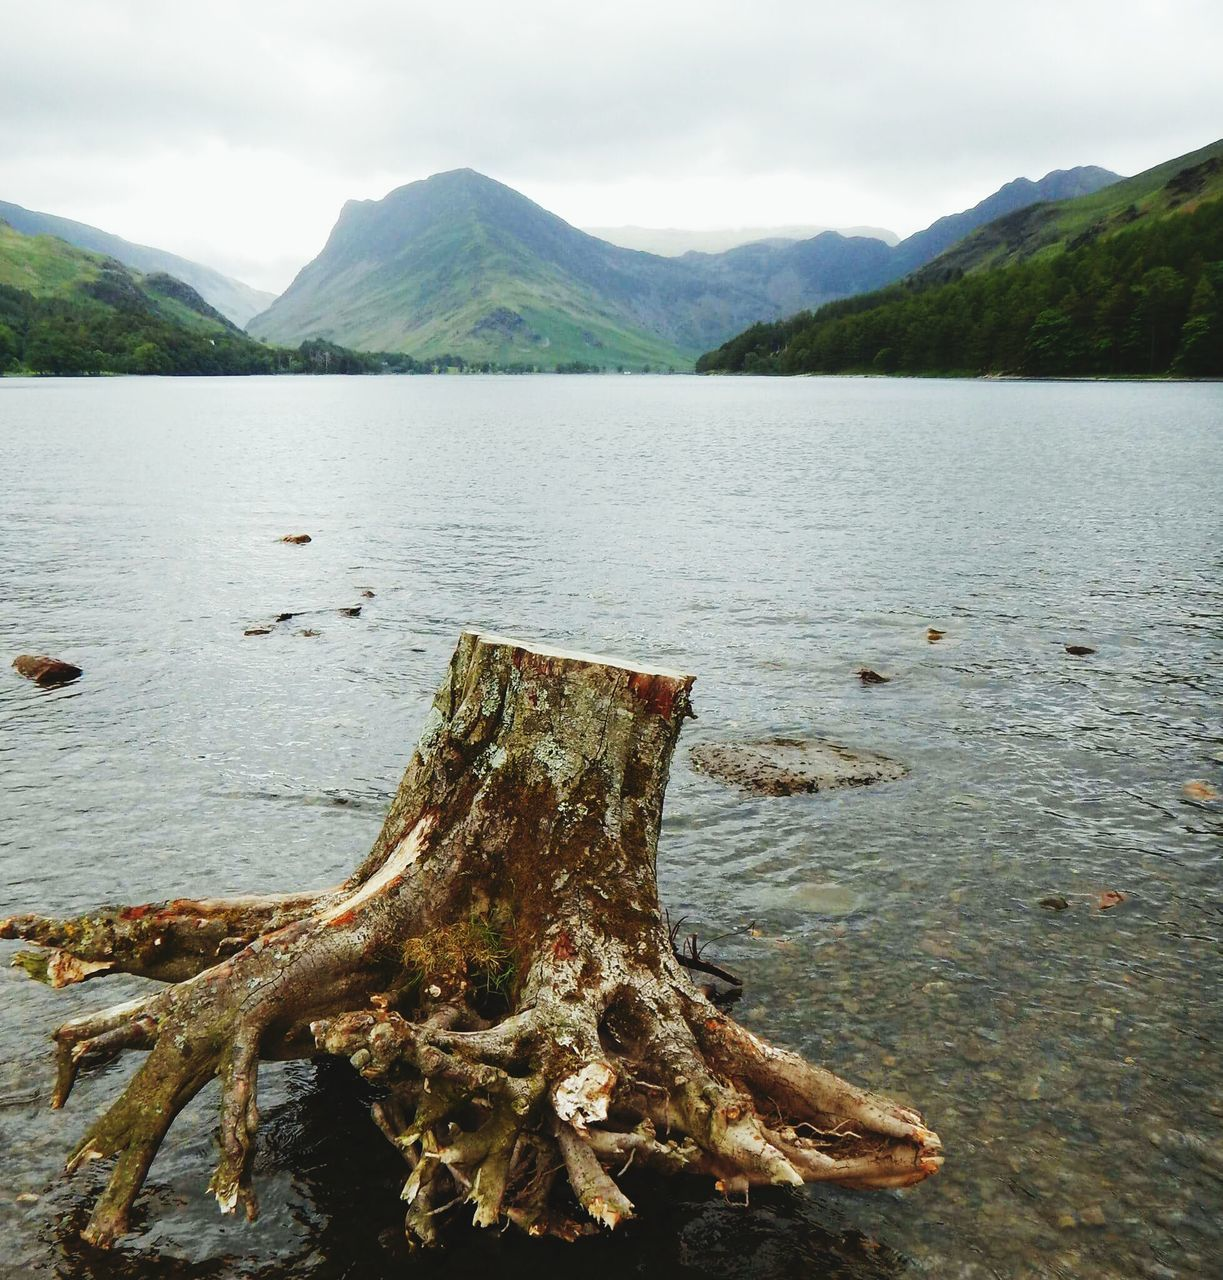 mountain, nature, water, lake, scenics, no people, tranquility, non-urban scene, tranquil scene, day, beauty in nature, outdoors, mountain range, sky, tree, dead tree, landscape, close-up